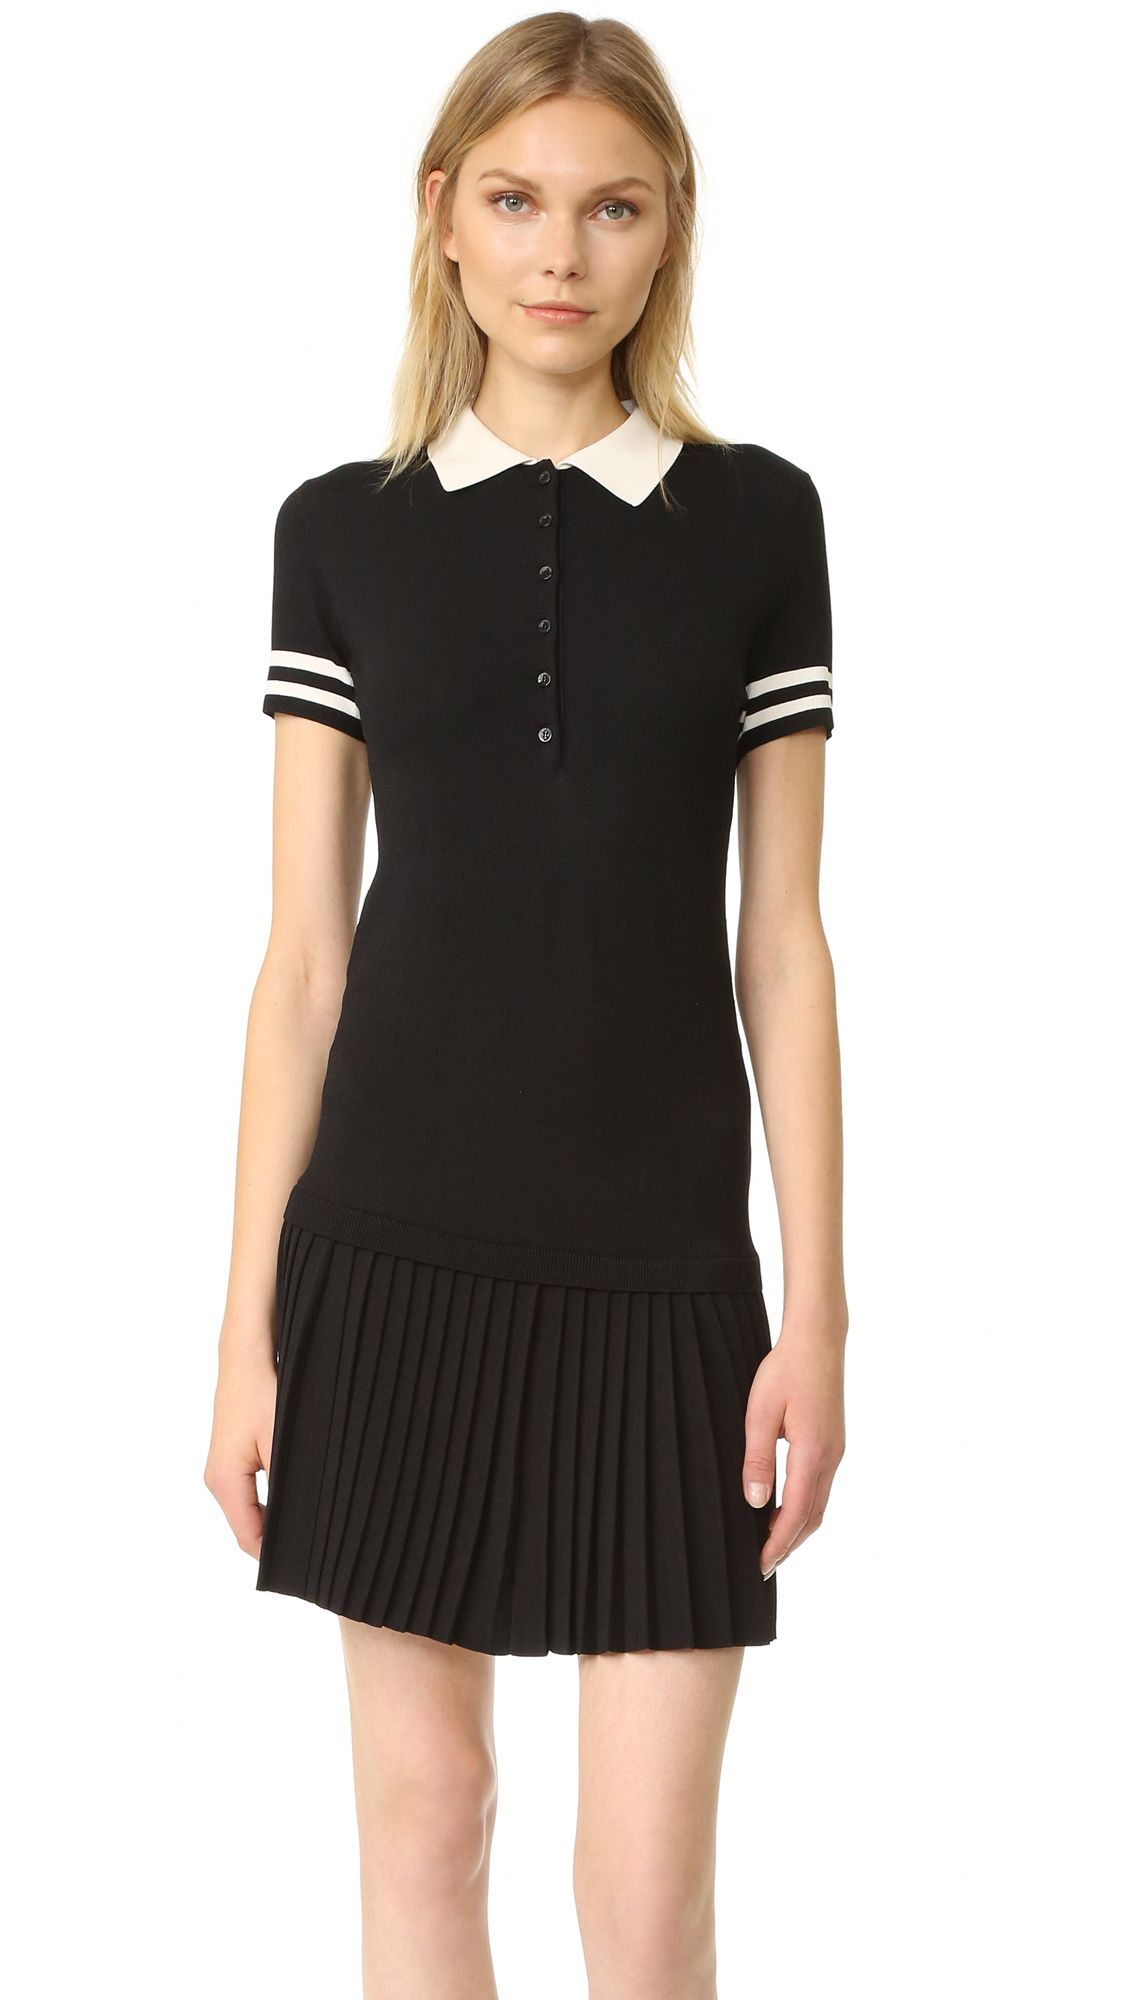 c4824075584 Buy it now. Red Valentino Polo Dress - Black Cream. A RED Valentino ...